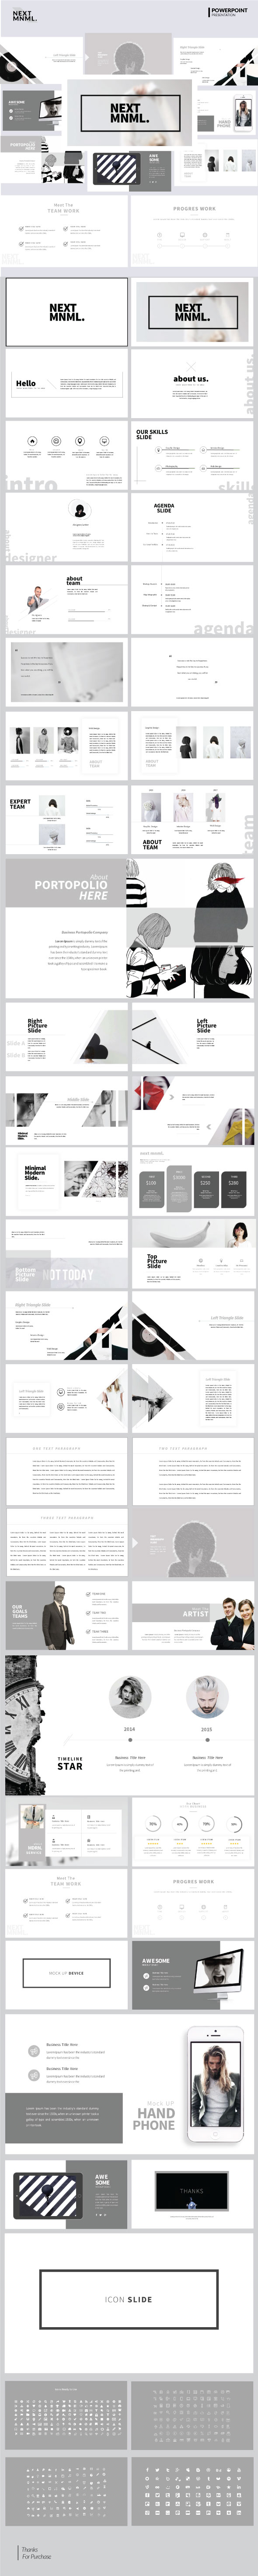 Next Mnml - Multipurpose PowerPoint Template - Business PowerPoint Templates